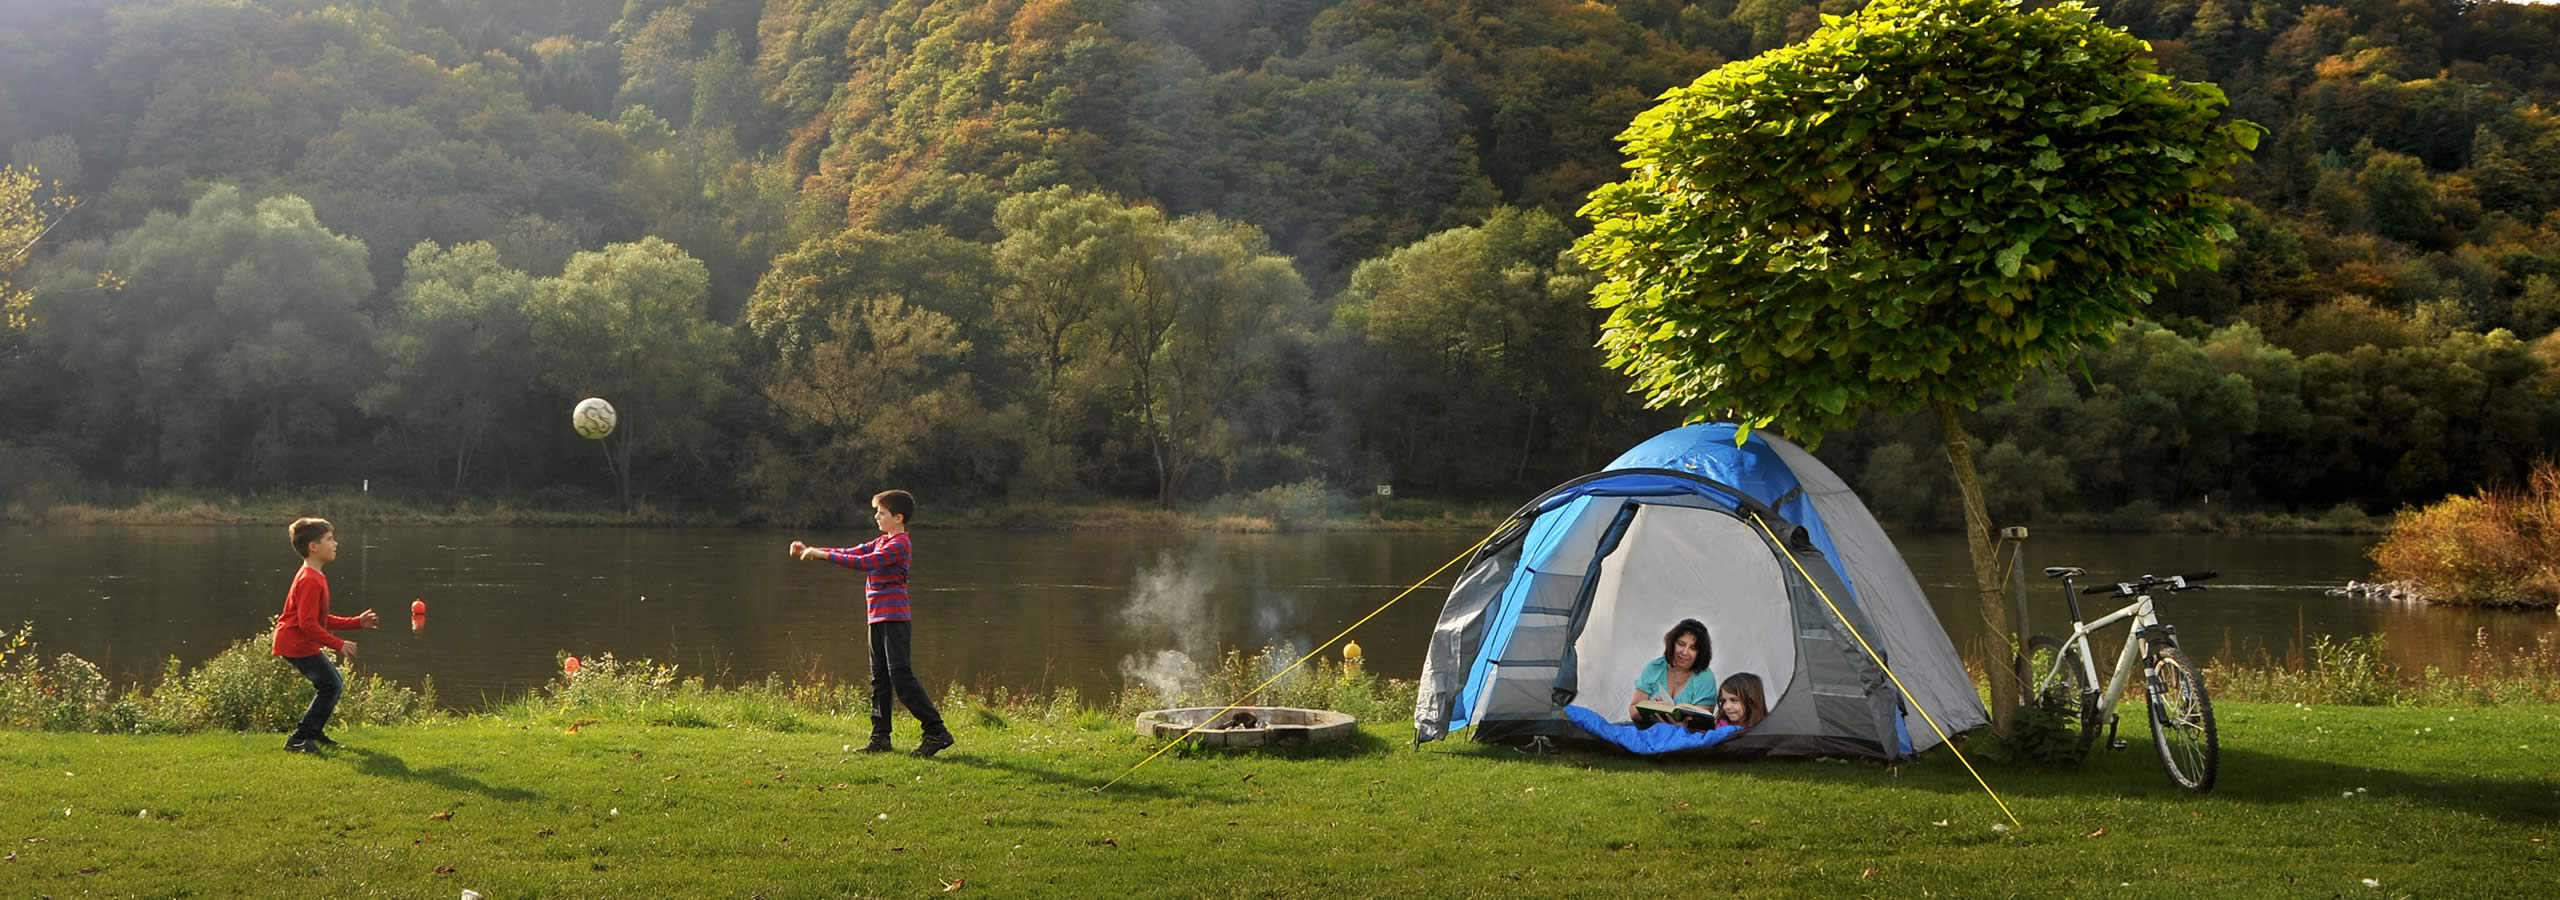 "Camping ground ""Zum Feuerberg"": Enjoy Nature - Love of life"